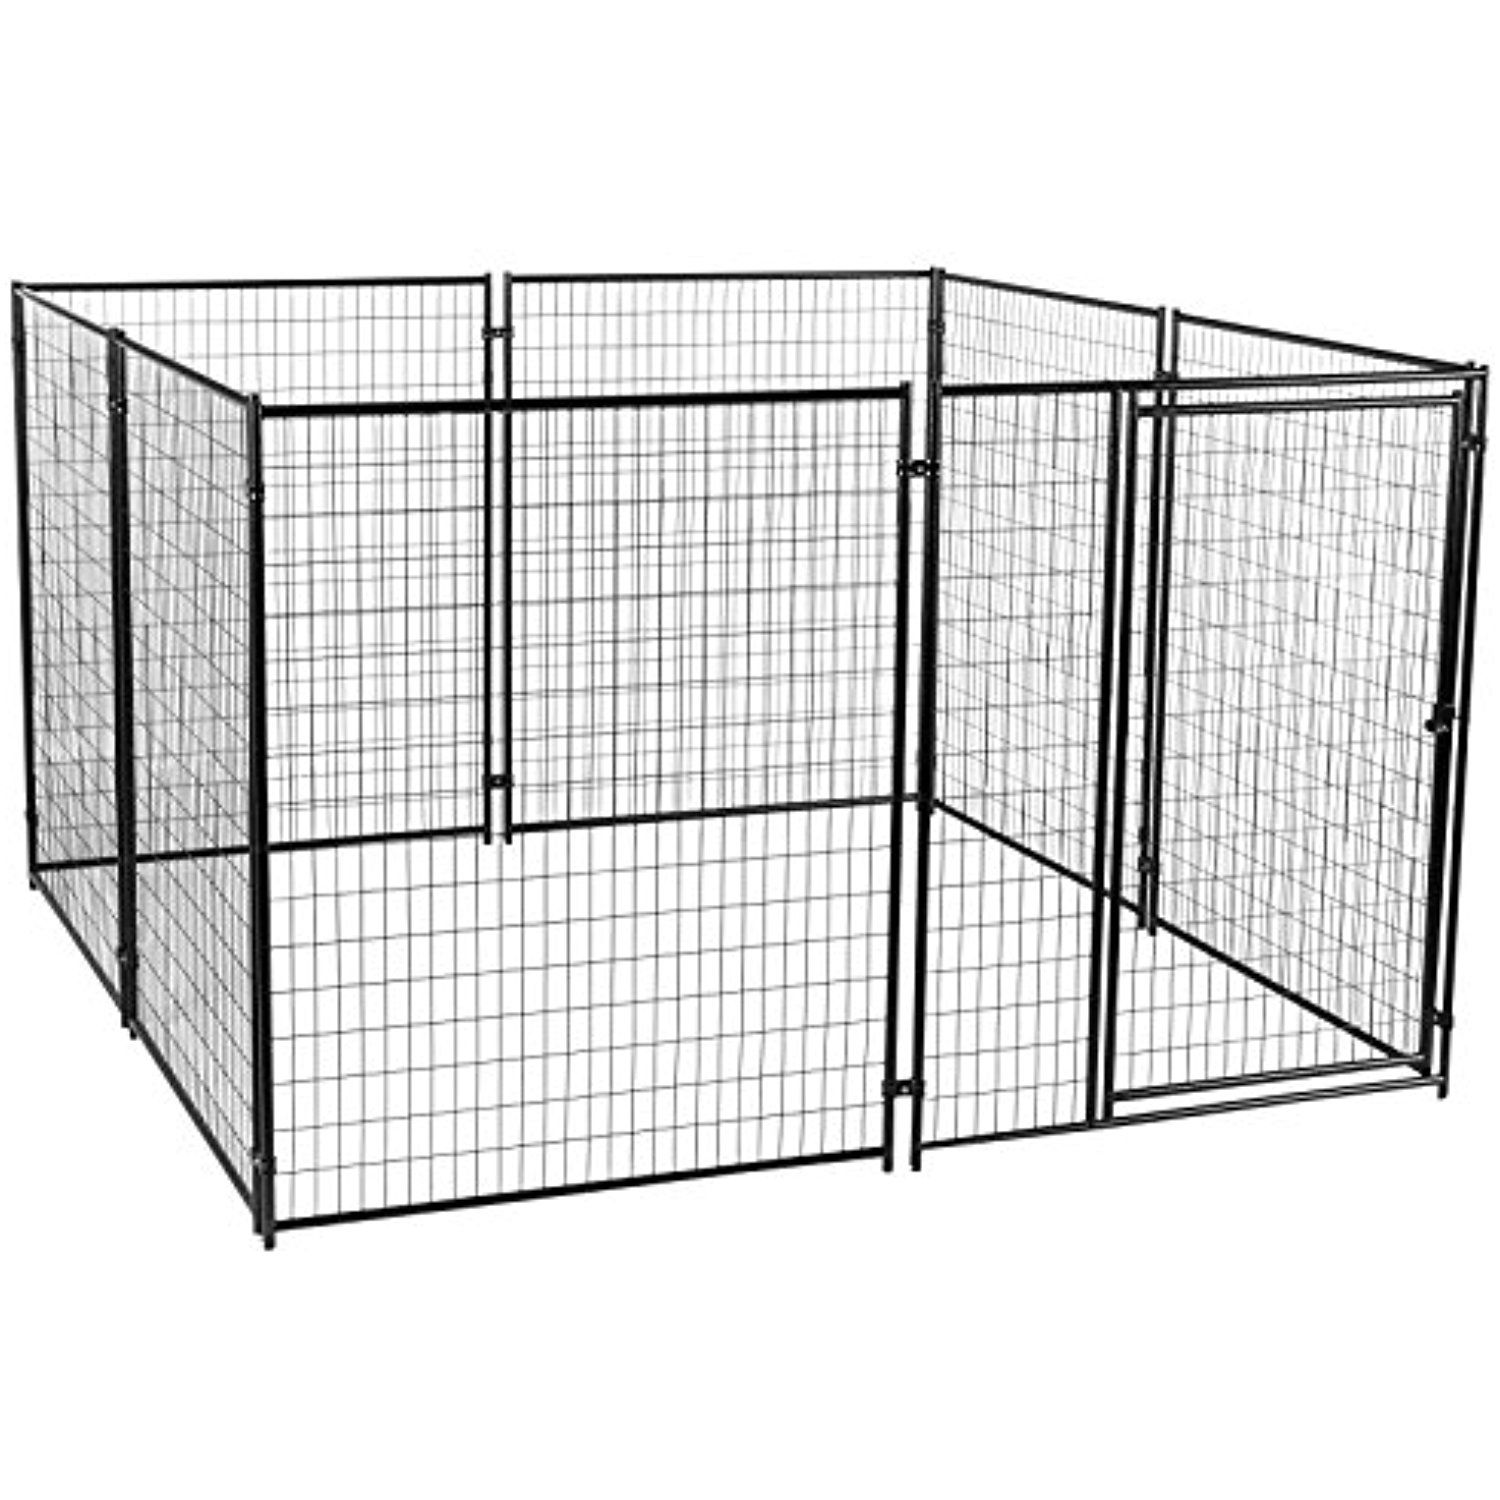 Dog Kennel - Lucky Dog Modular Box Kennel - This Welded Animal ...